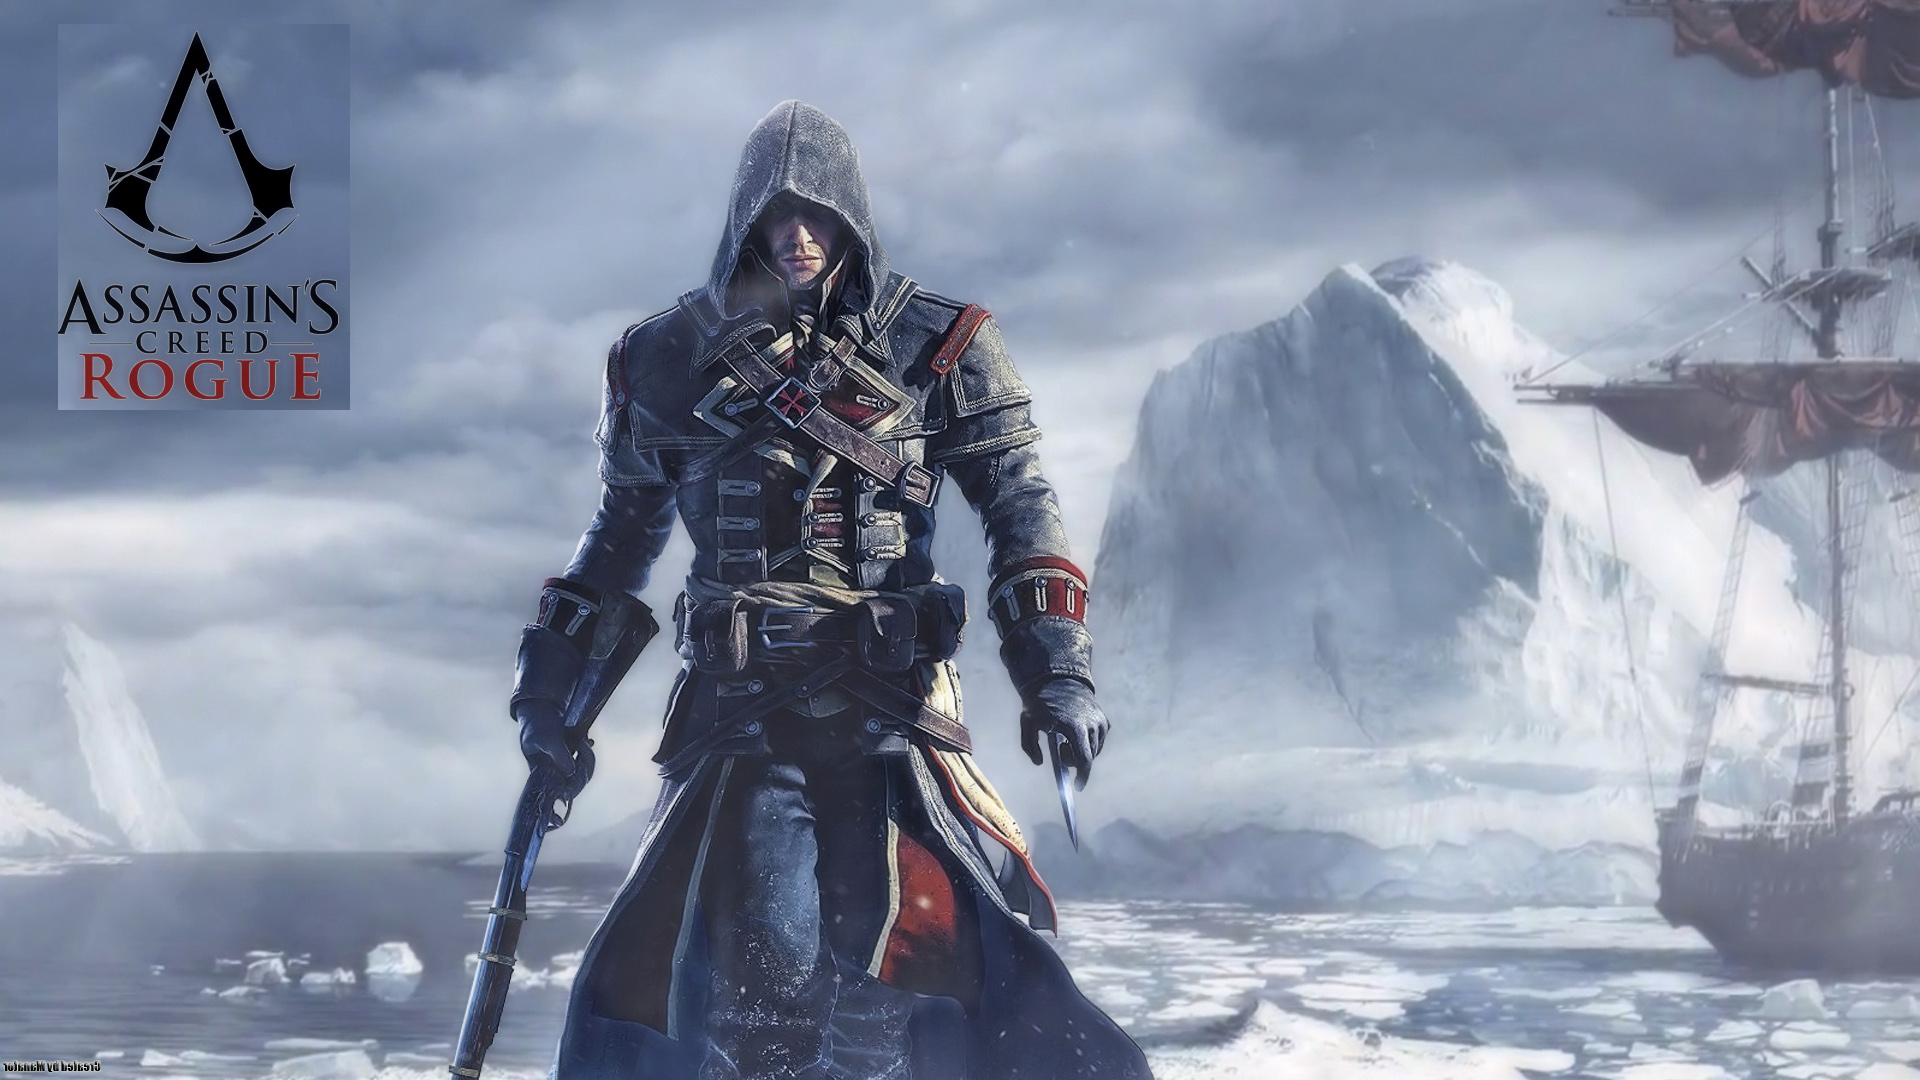 Assassins creed rogue wallpapers driverlayer search engine for Assassin s creed sfondi